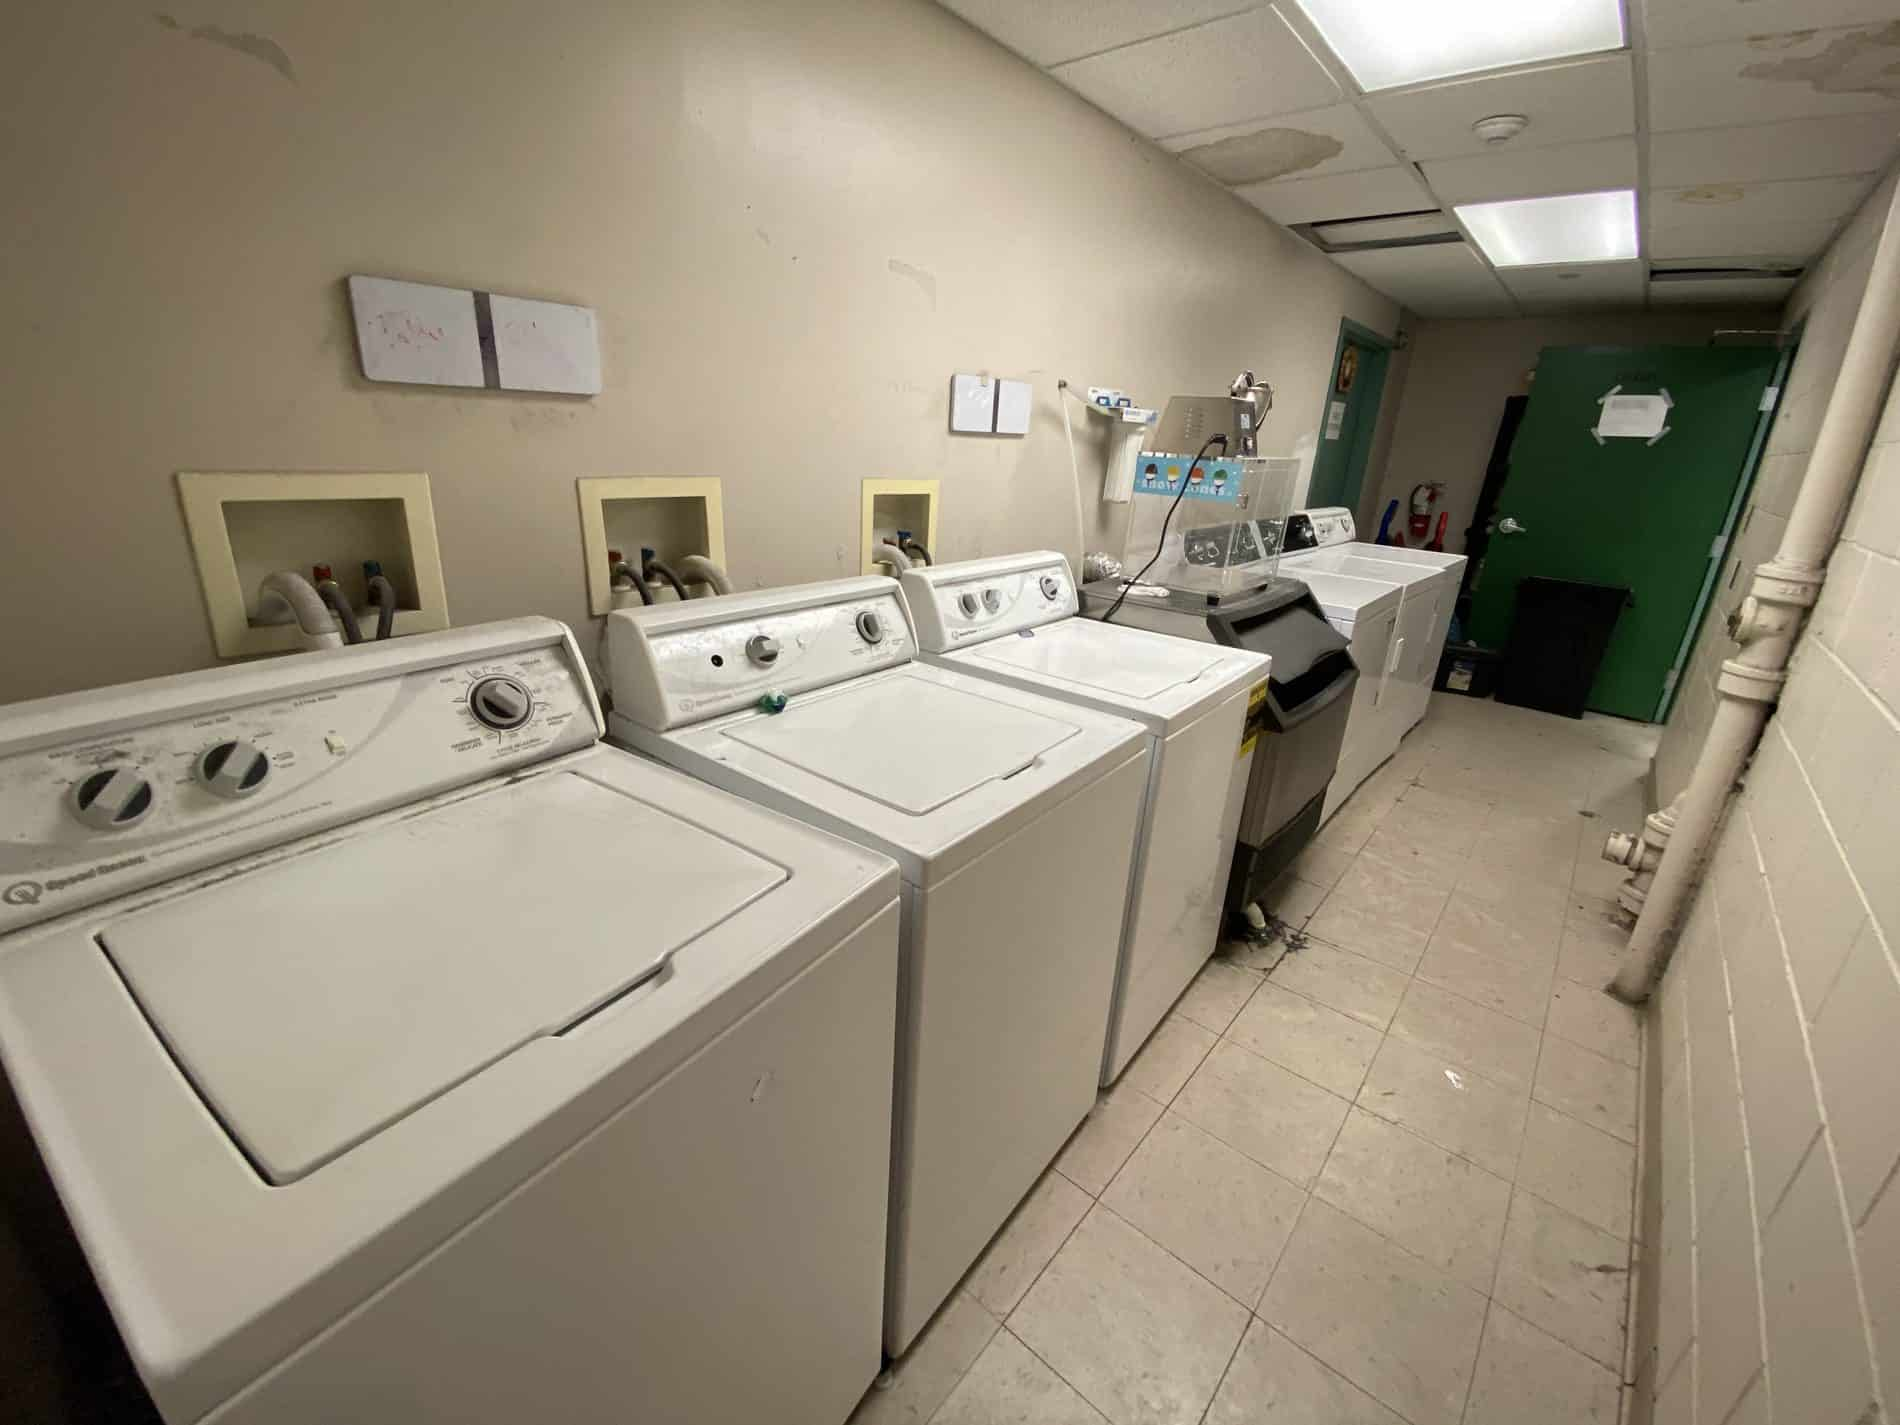 Lambda Chi Alpha's laundry room. It has three washers and three dryers which are open to all members 24/7 as needed.